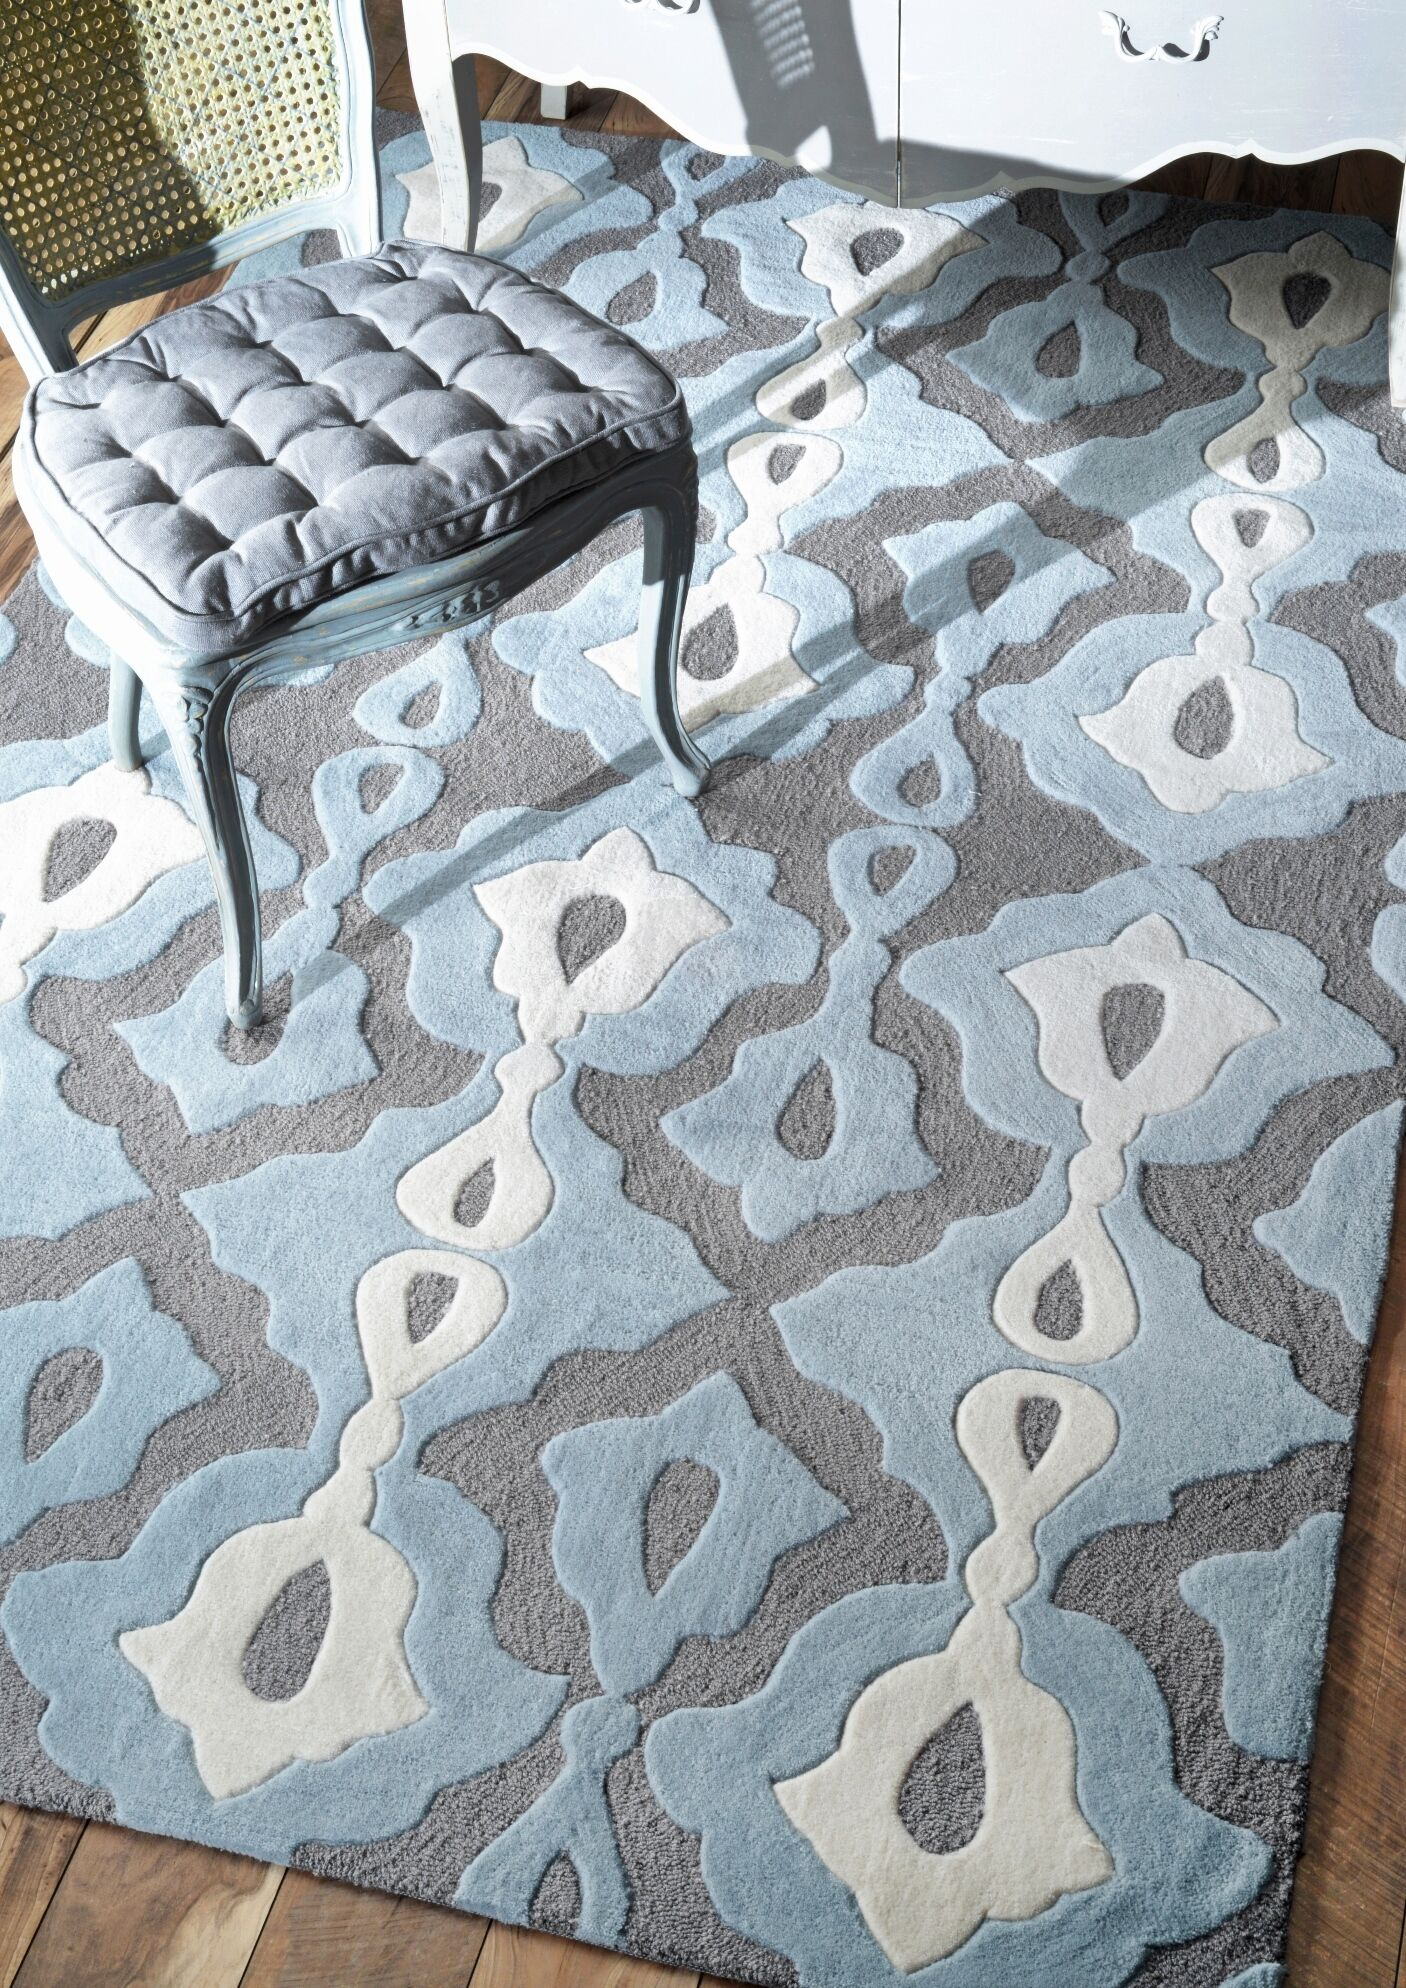 Todd Hand-Tufted Slate/Blue Area Rug Rug Size: Rectangle 5' x 8'